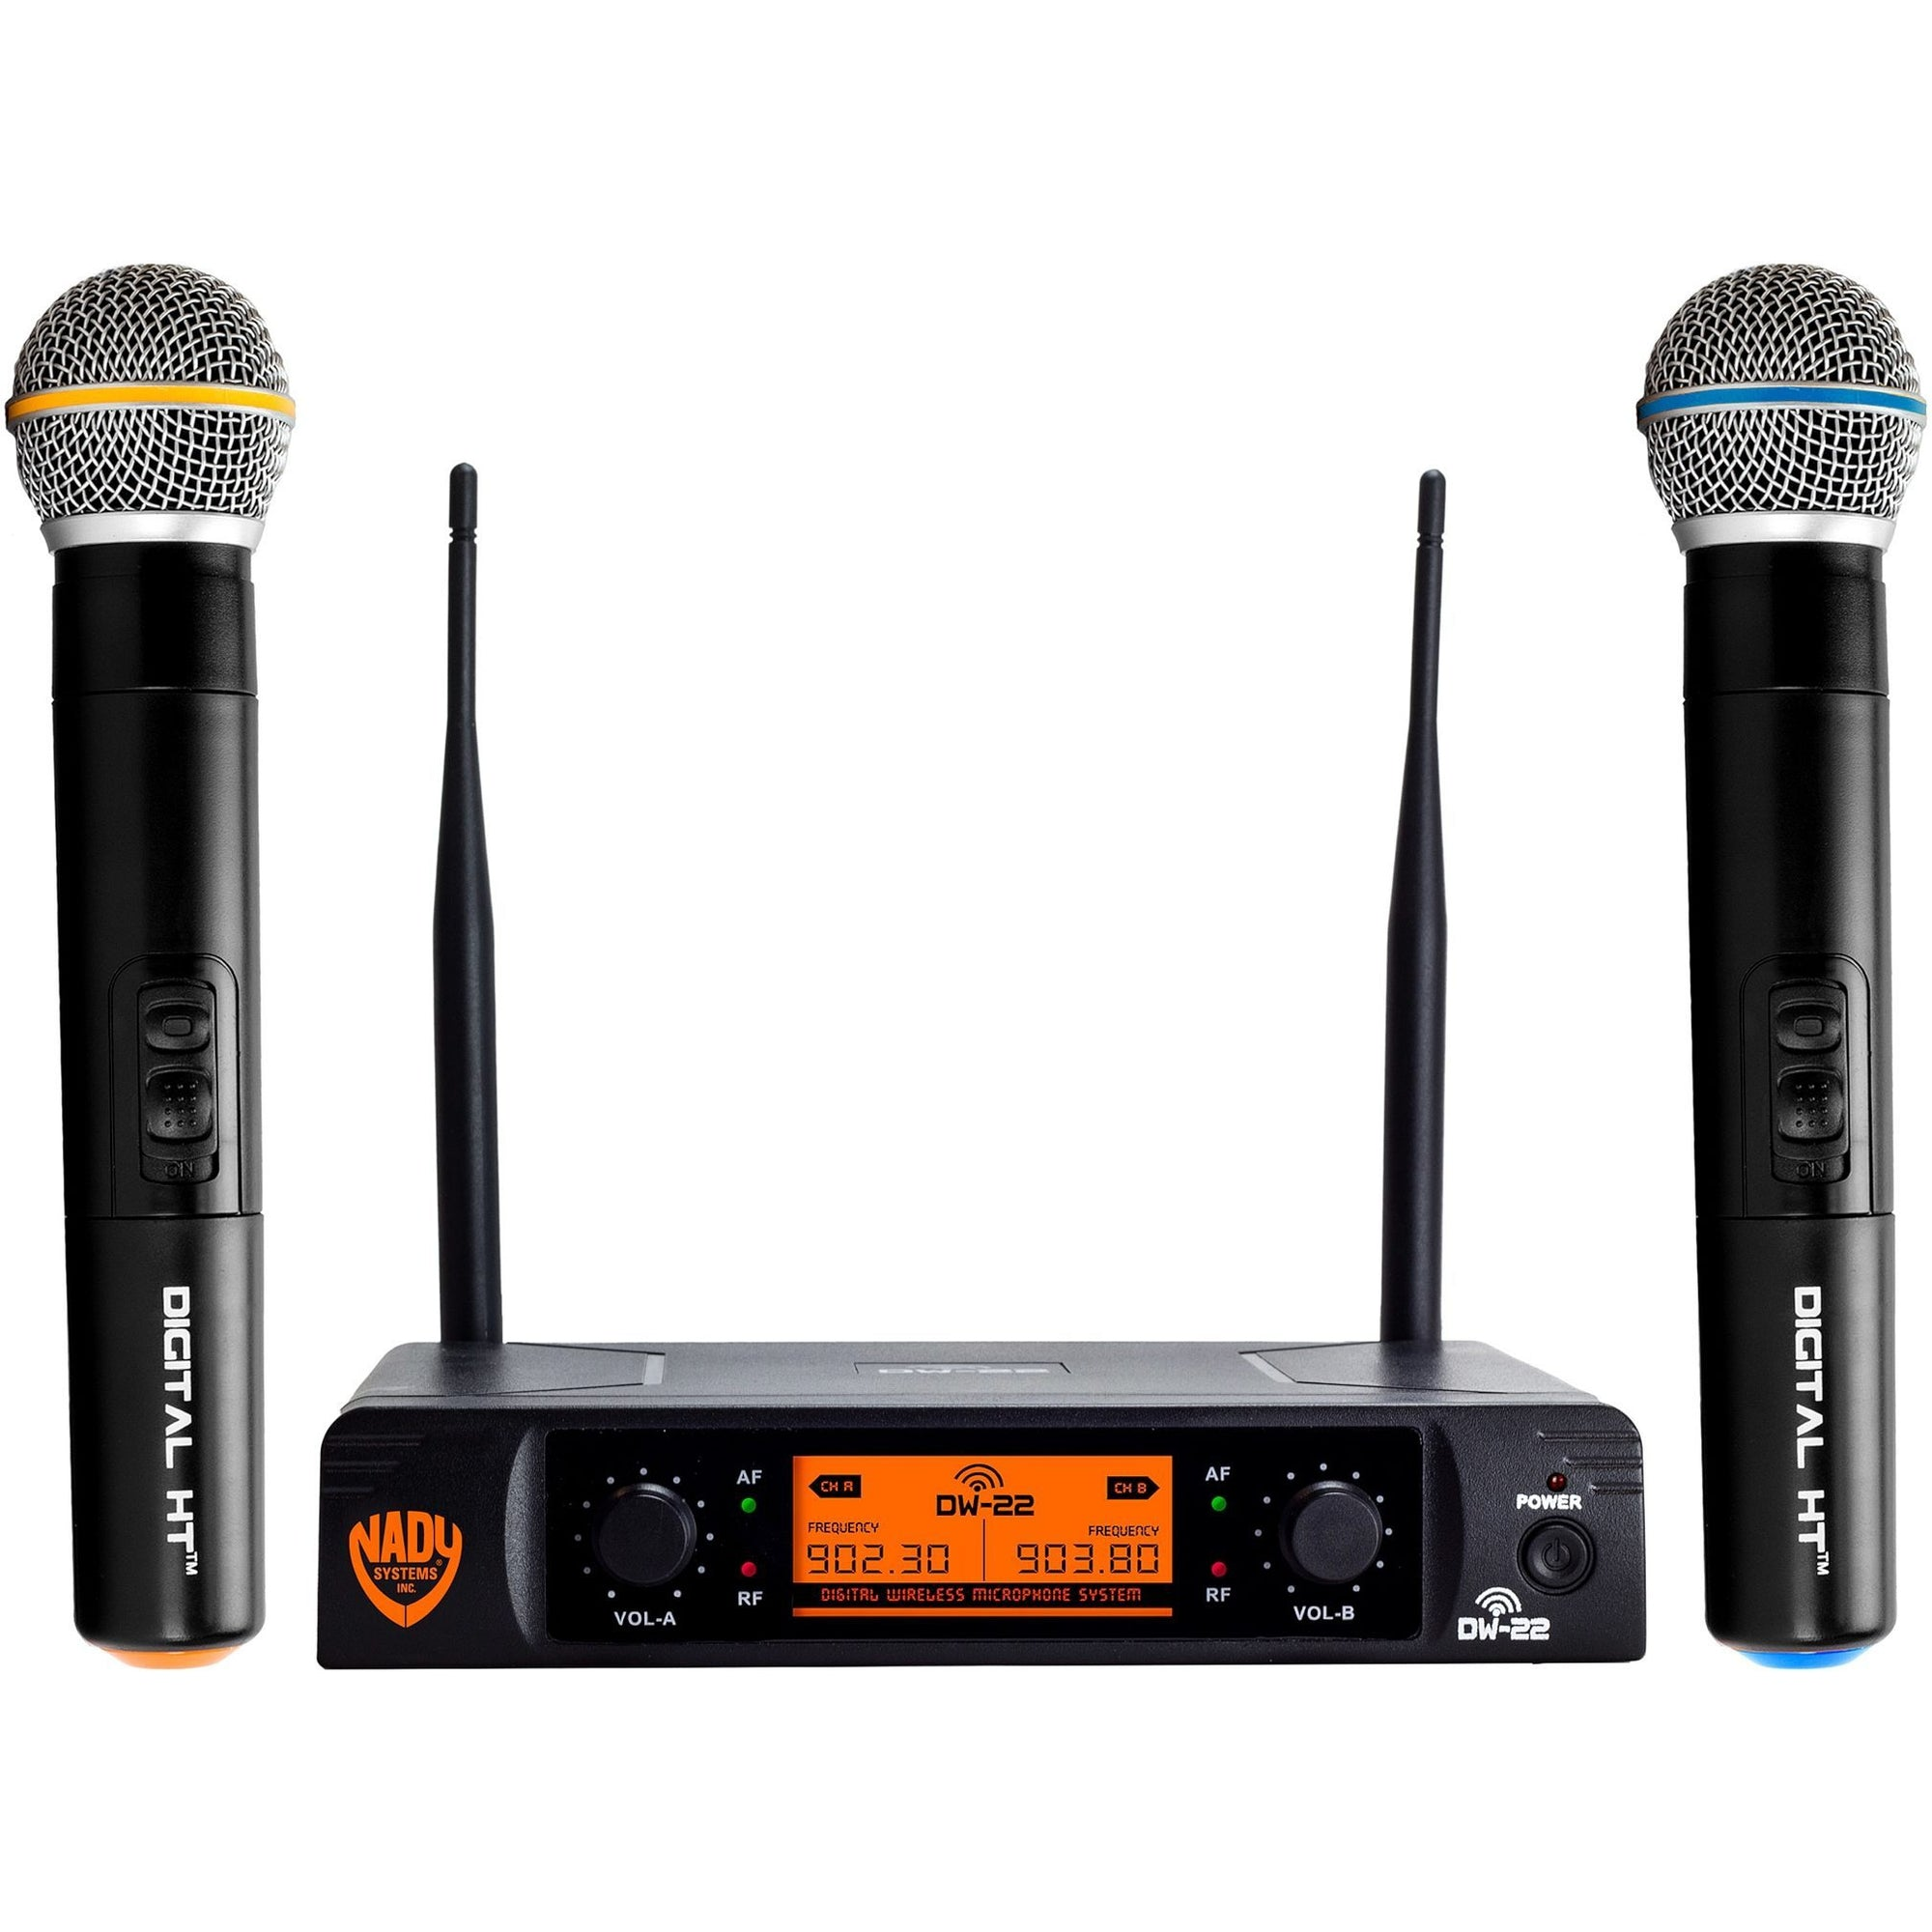 Nady DW-22 Dual Transmitter Digital Wireless Vocal Microphone System, Channel D-15 and D-16